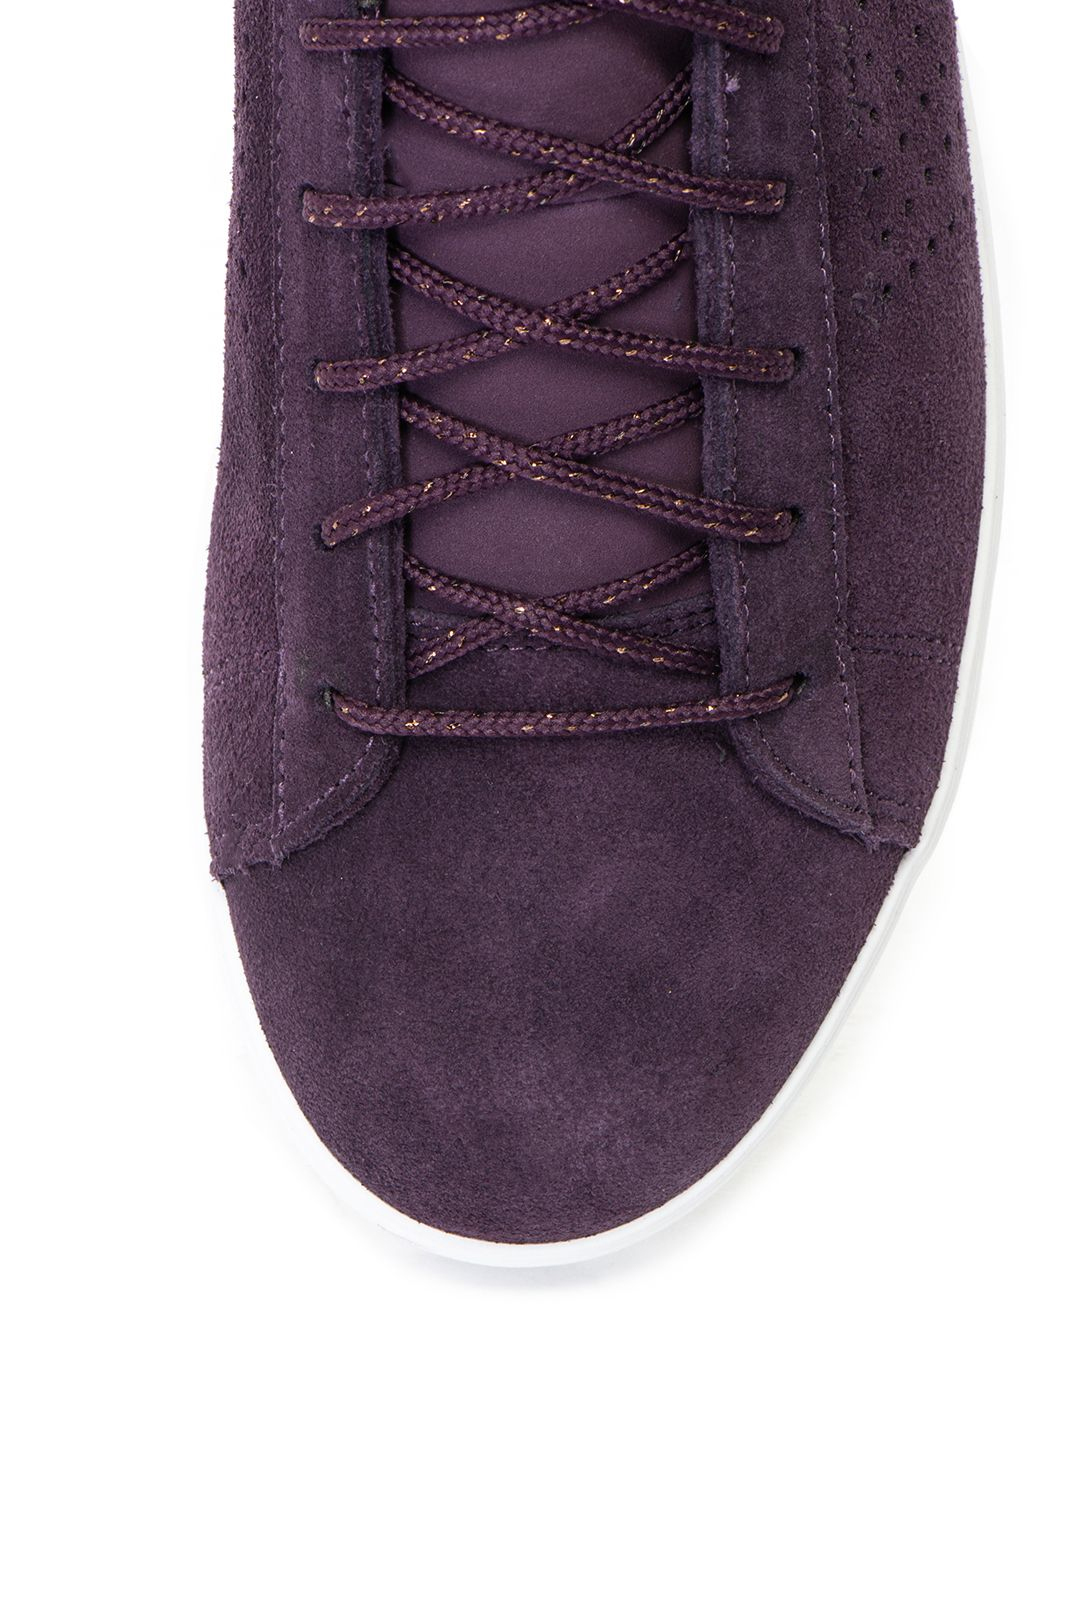 Baskets / Sneakers  Le coq sportif 1820691 AGATE PREMIUM PLUM PERFECT